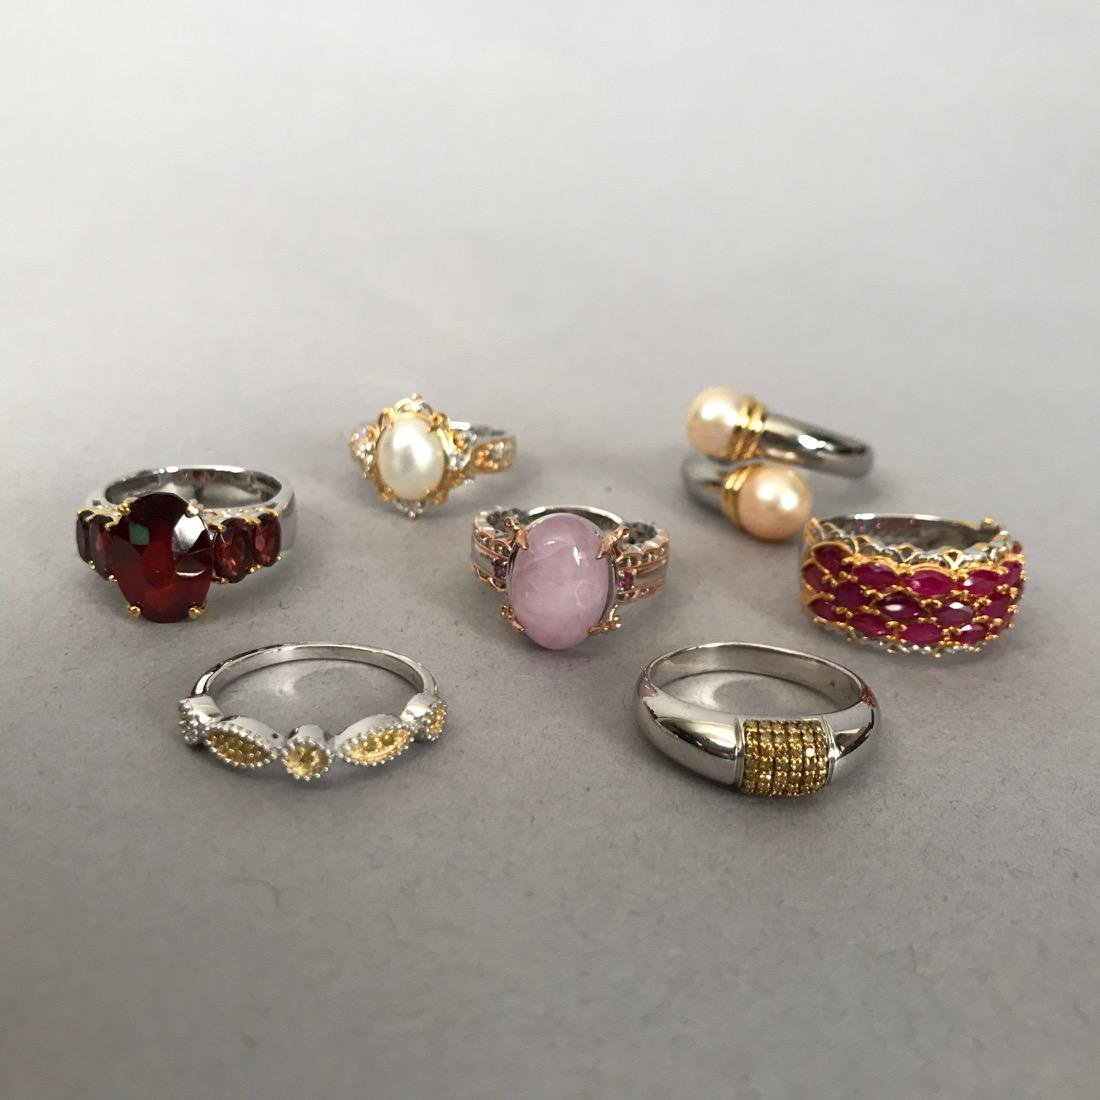 7 Sterling Silver Rings with Gold Accents